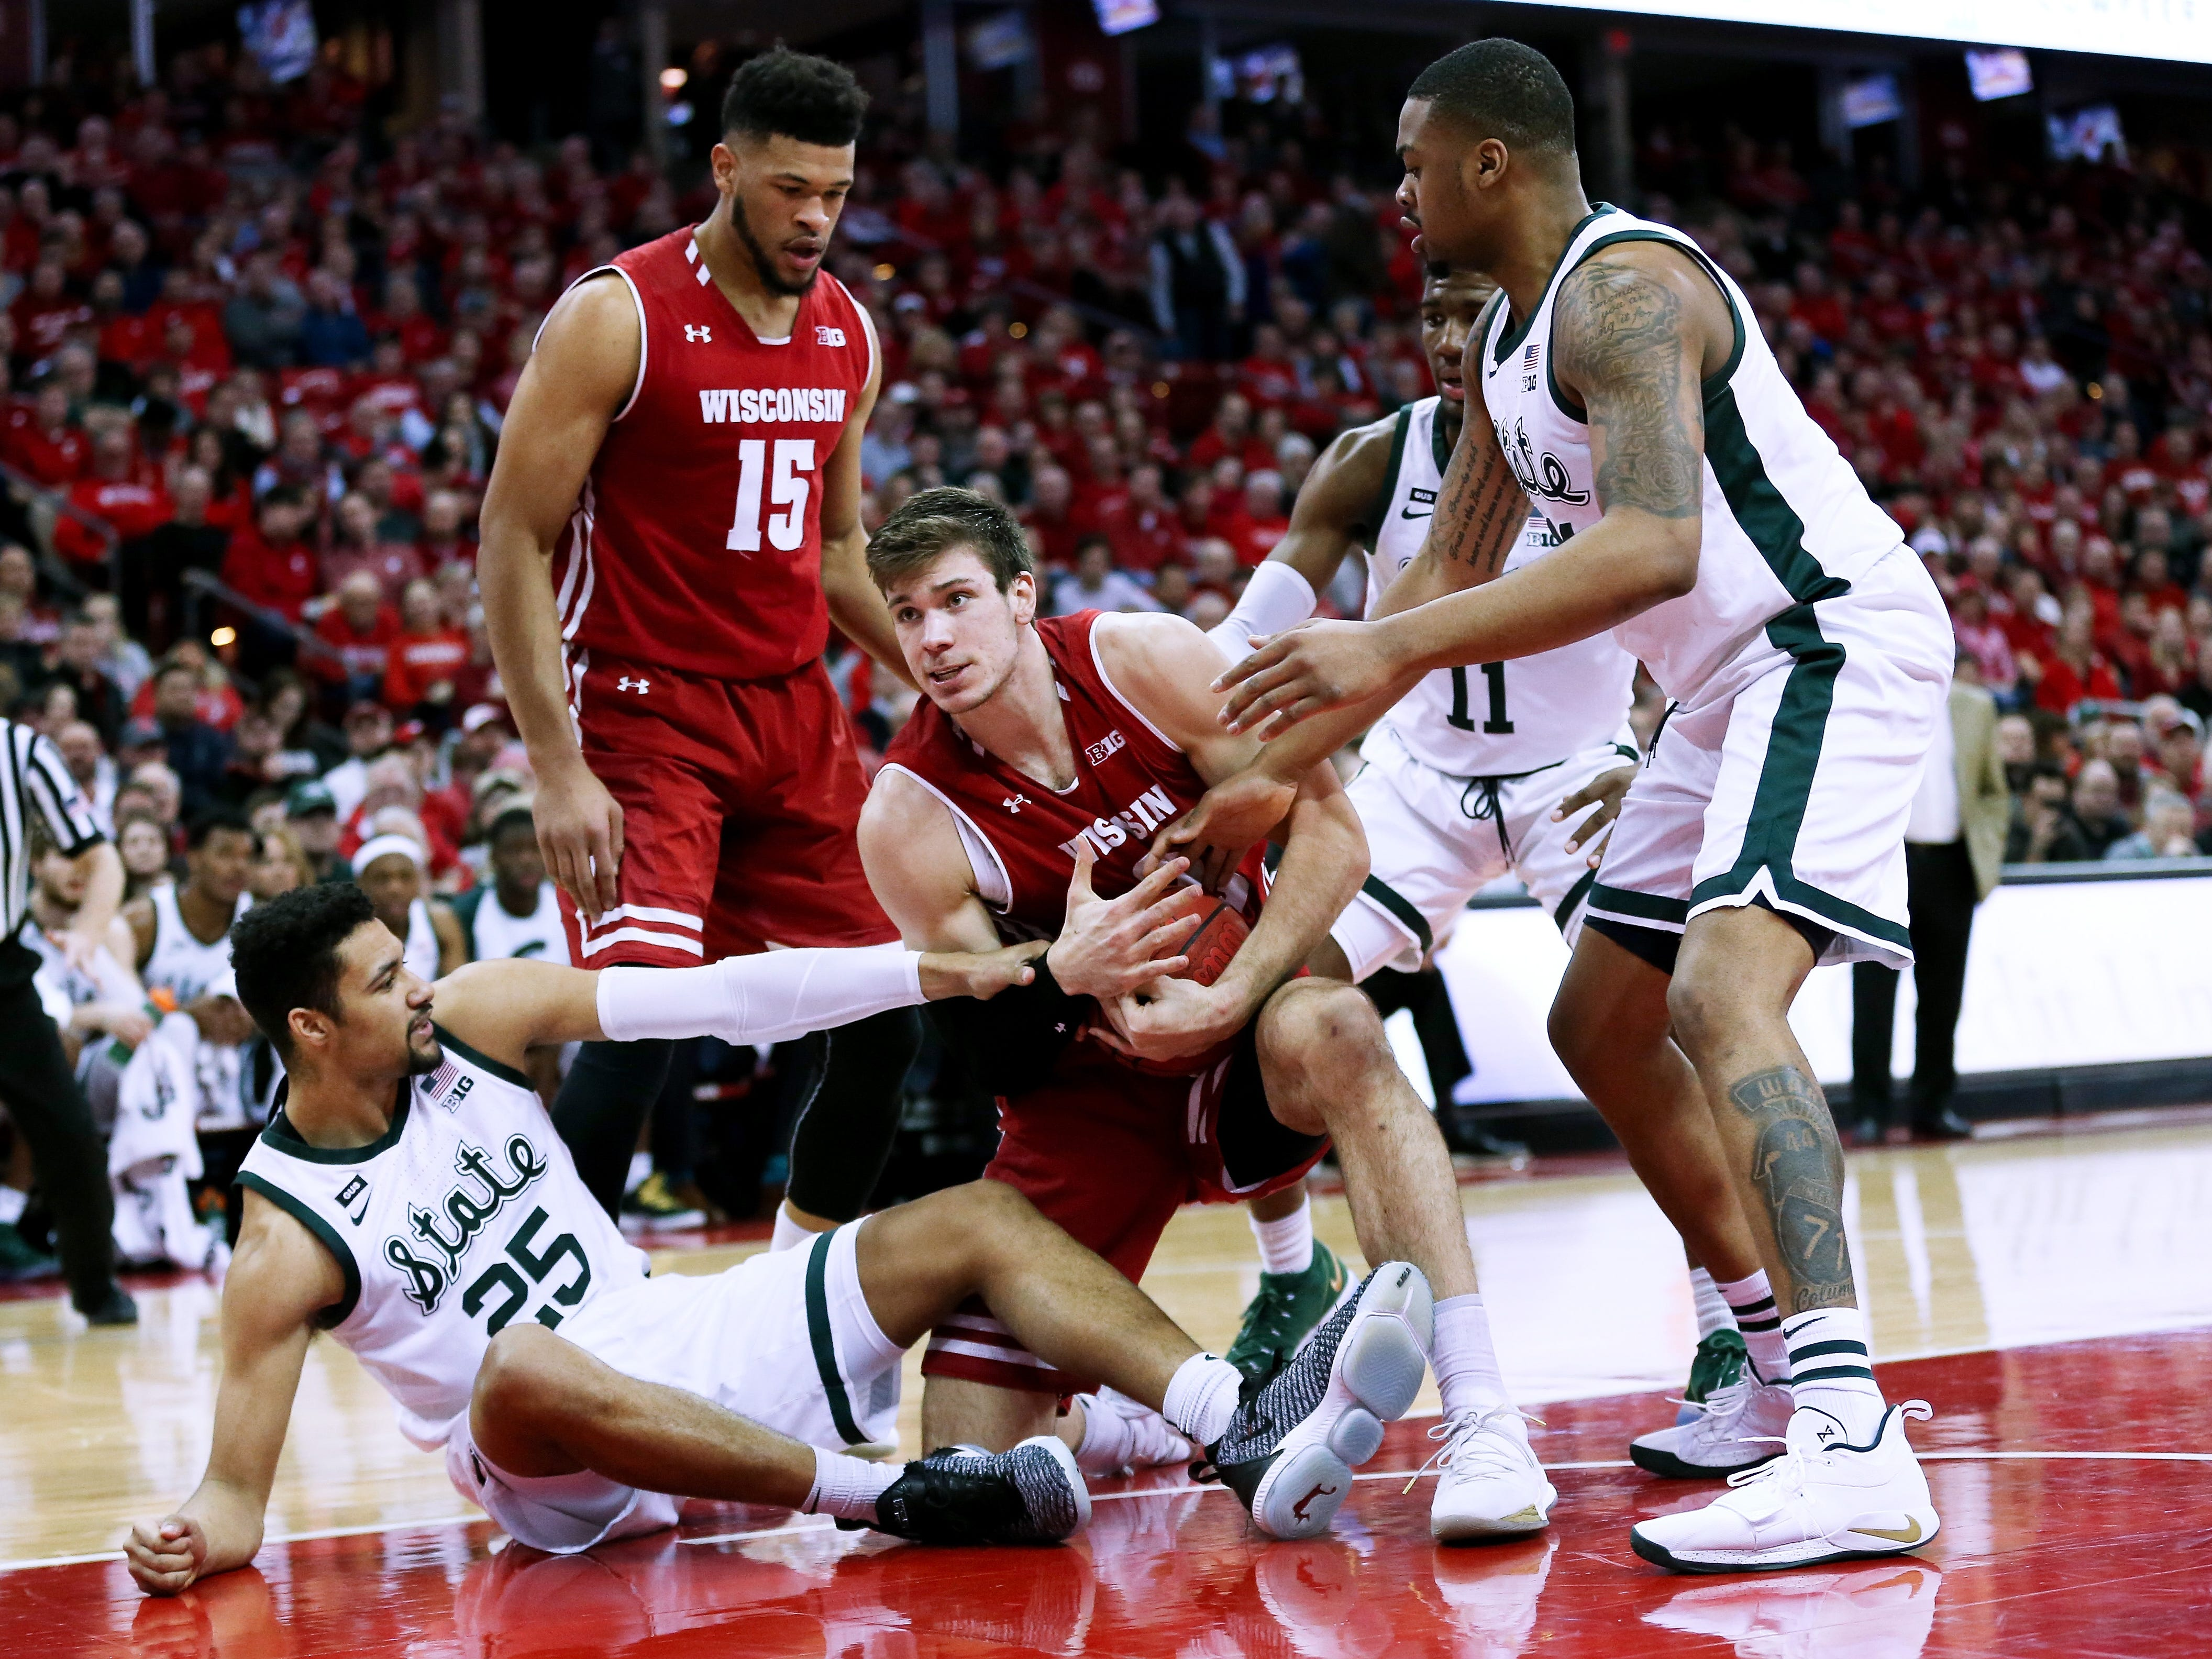 Wisconsin's Ethan Happ  calls for a timeout in the first half.